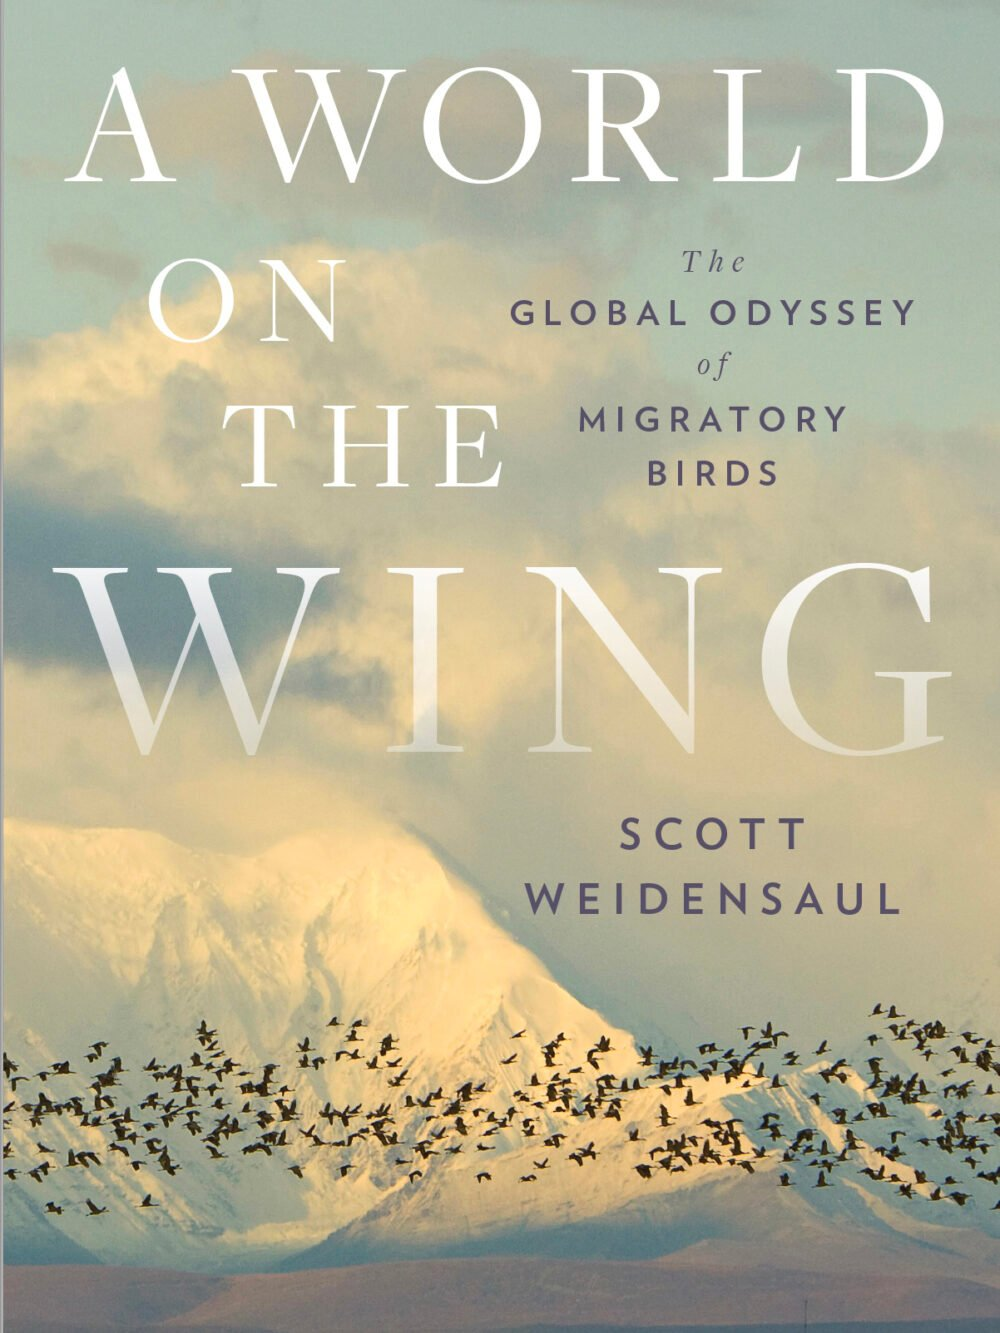 Book jacket depicting a flock of migratory birds against a backdrop of distant, snow-capped mountains.